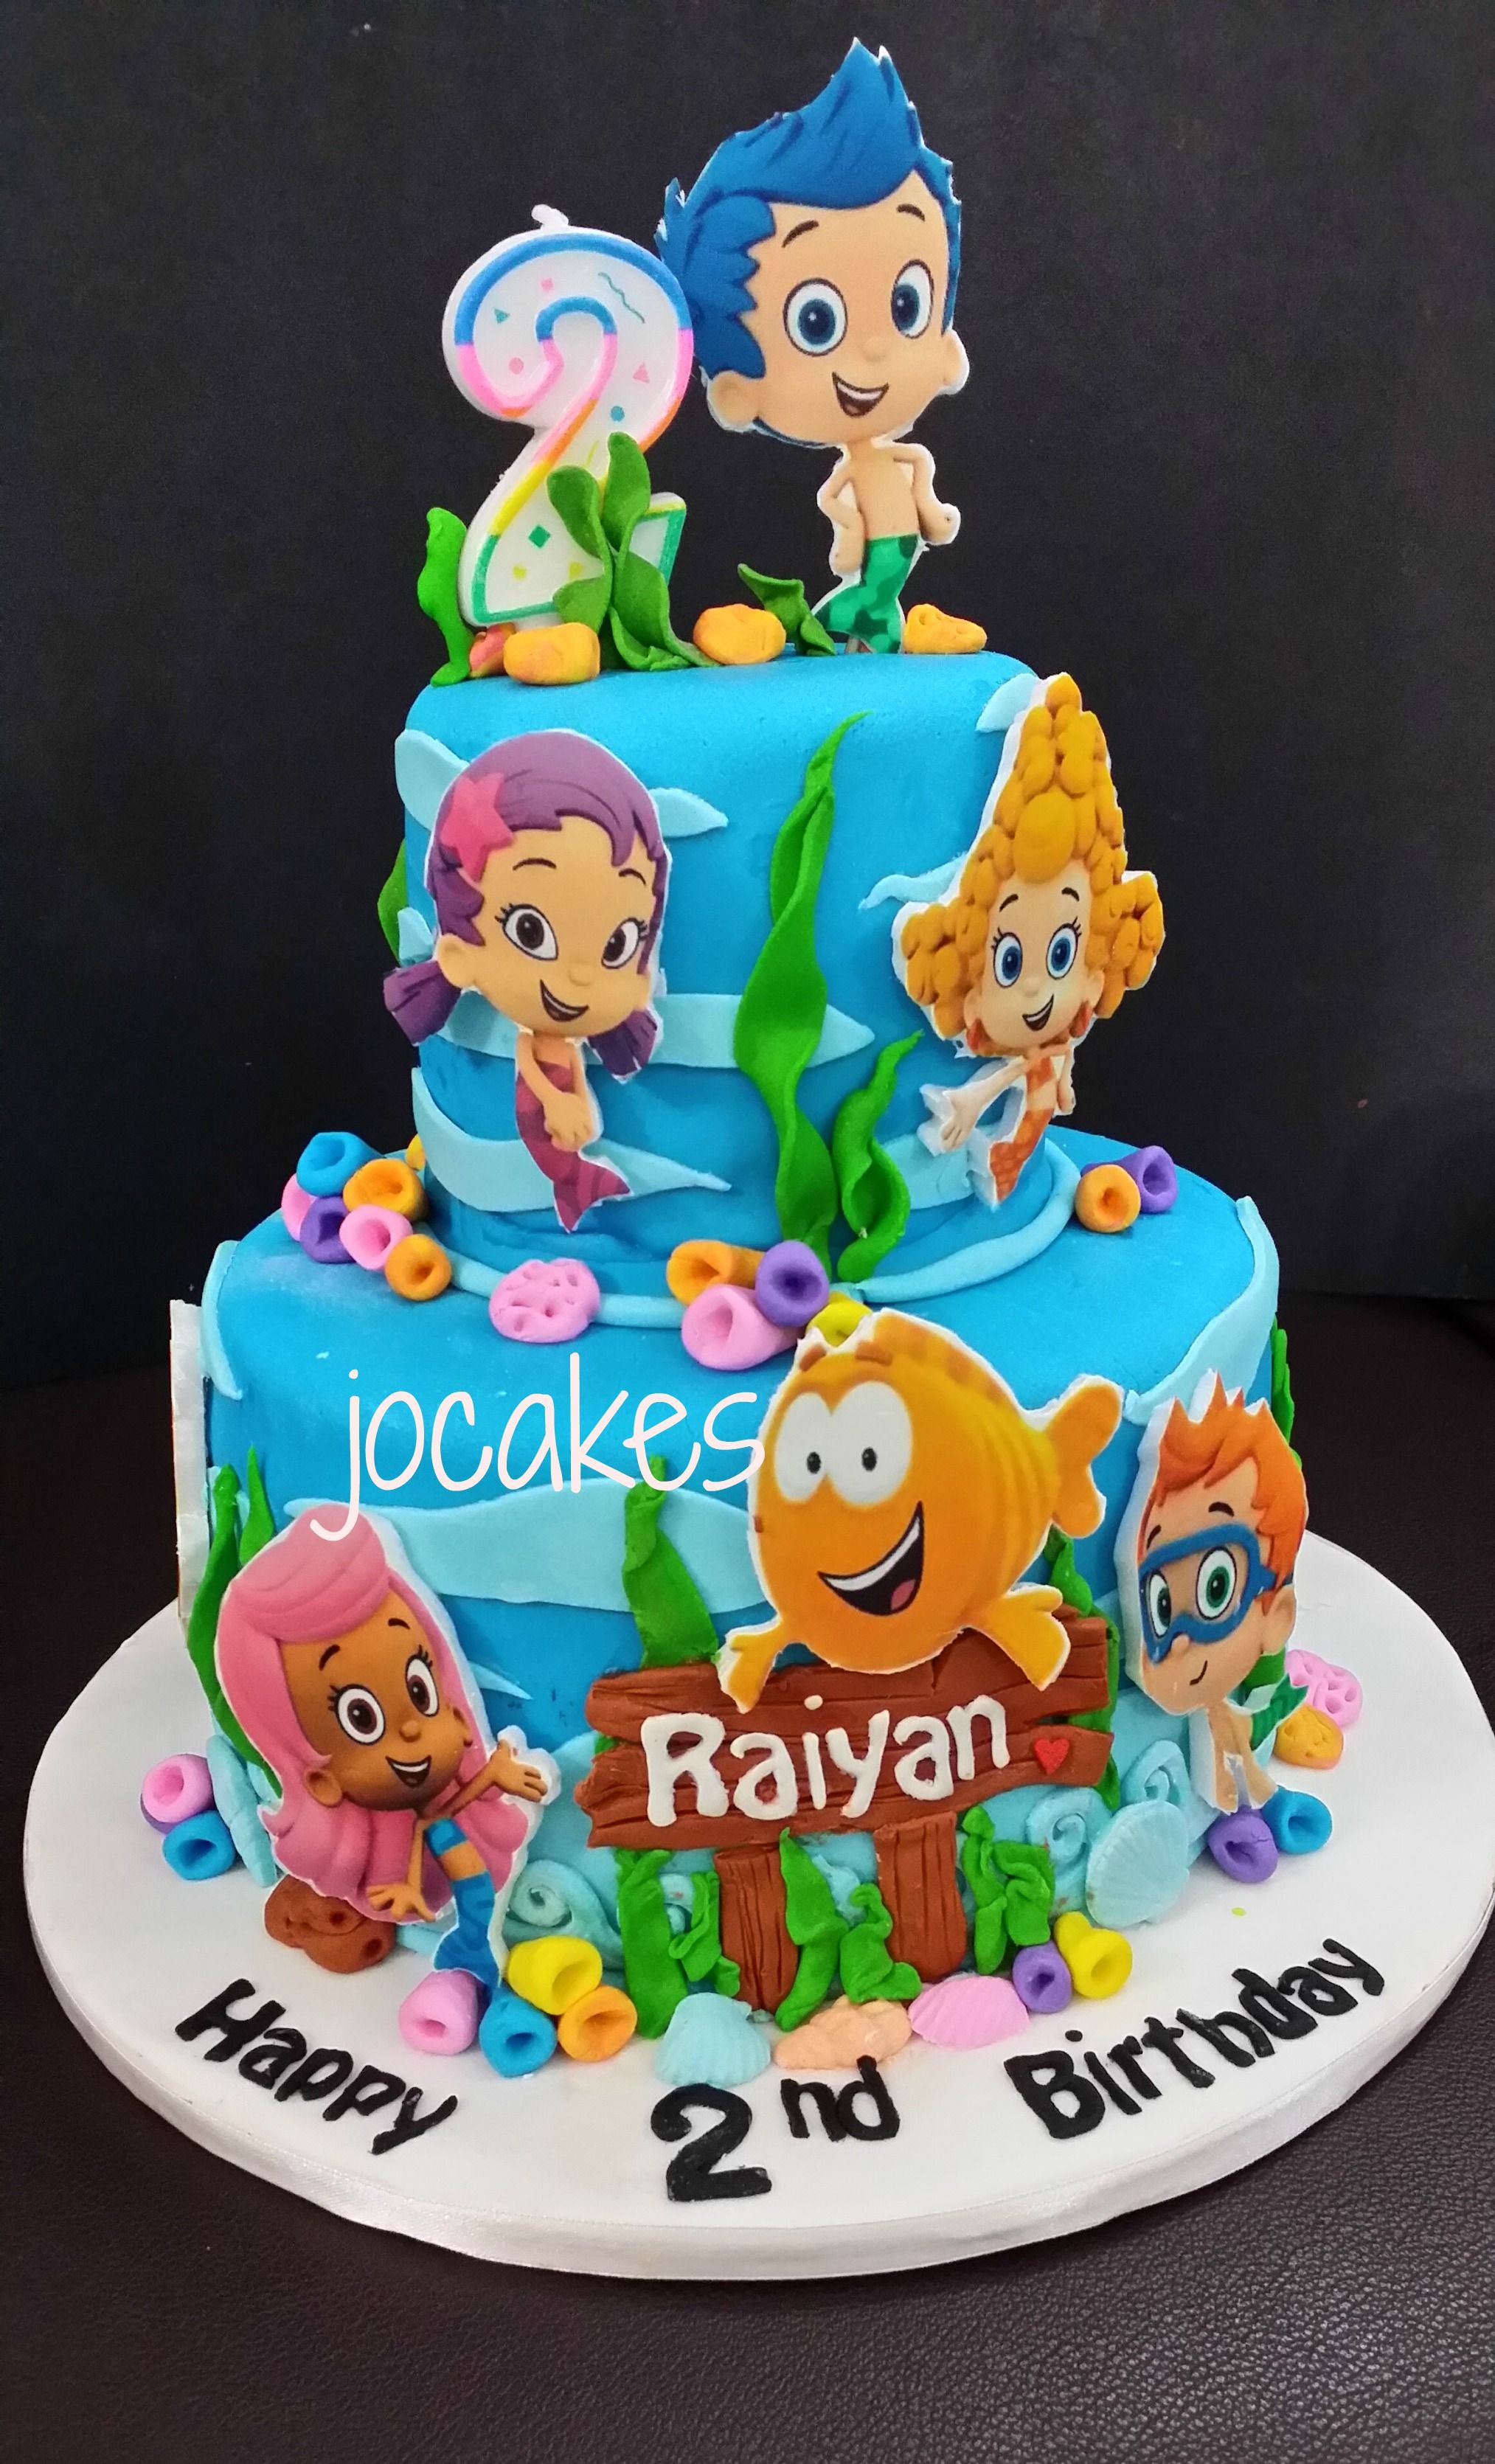 Wondrous Bubble Guppies Cake Google Search Bubble Guppies Birthday Cake Birthday Cards Printable Trancafe Filternl